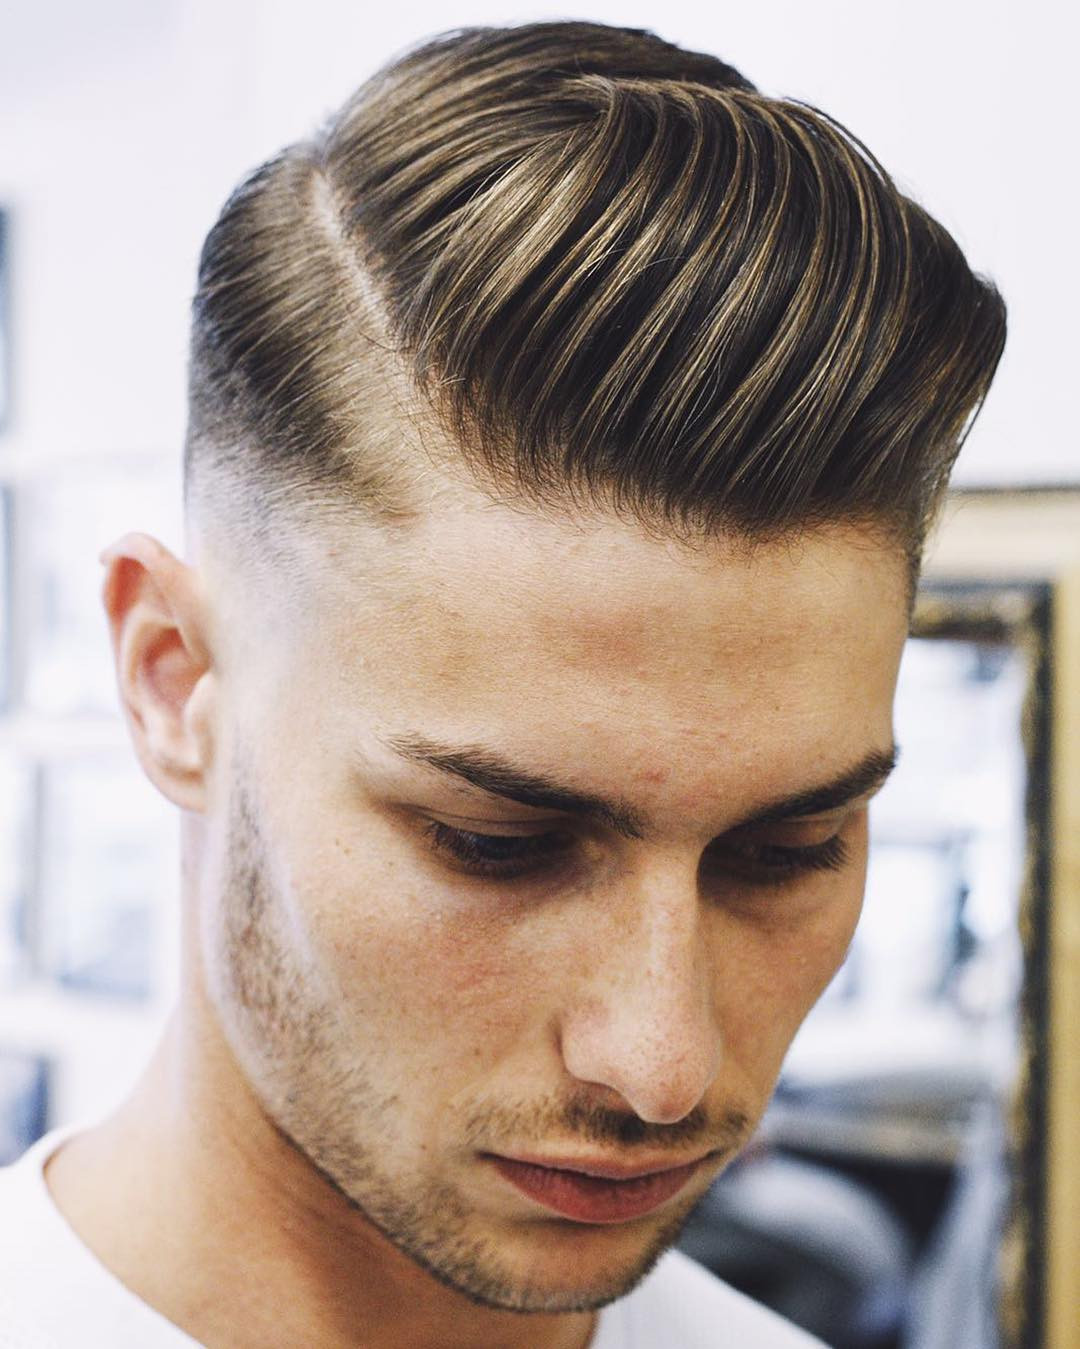 Best ideas about Top Male Haircuts . Save or Pin The Best Haircuts For Men 2017 Top 100 Updated Now.